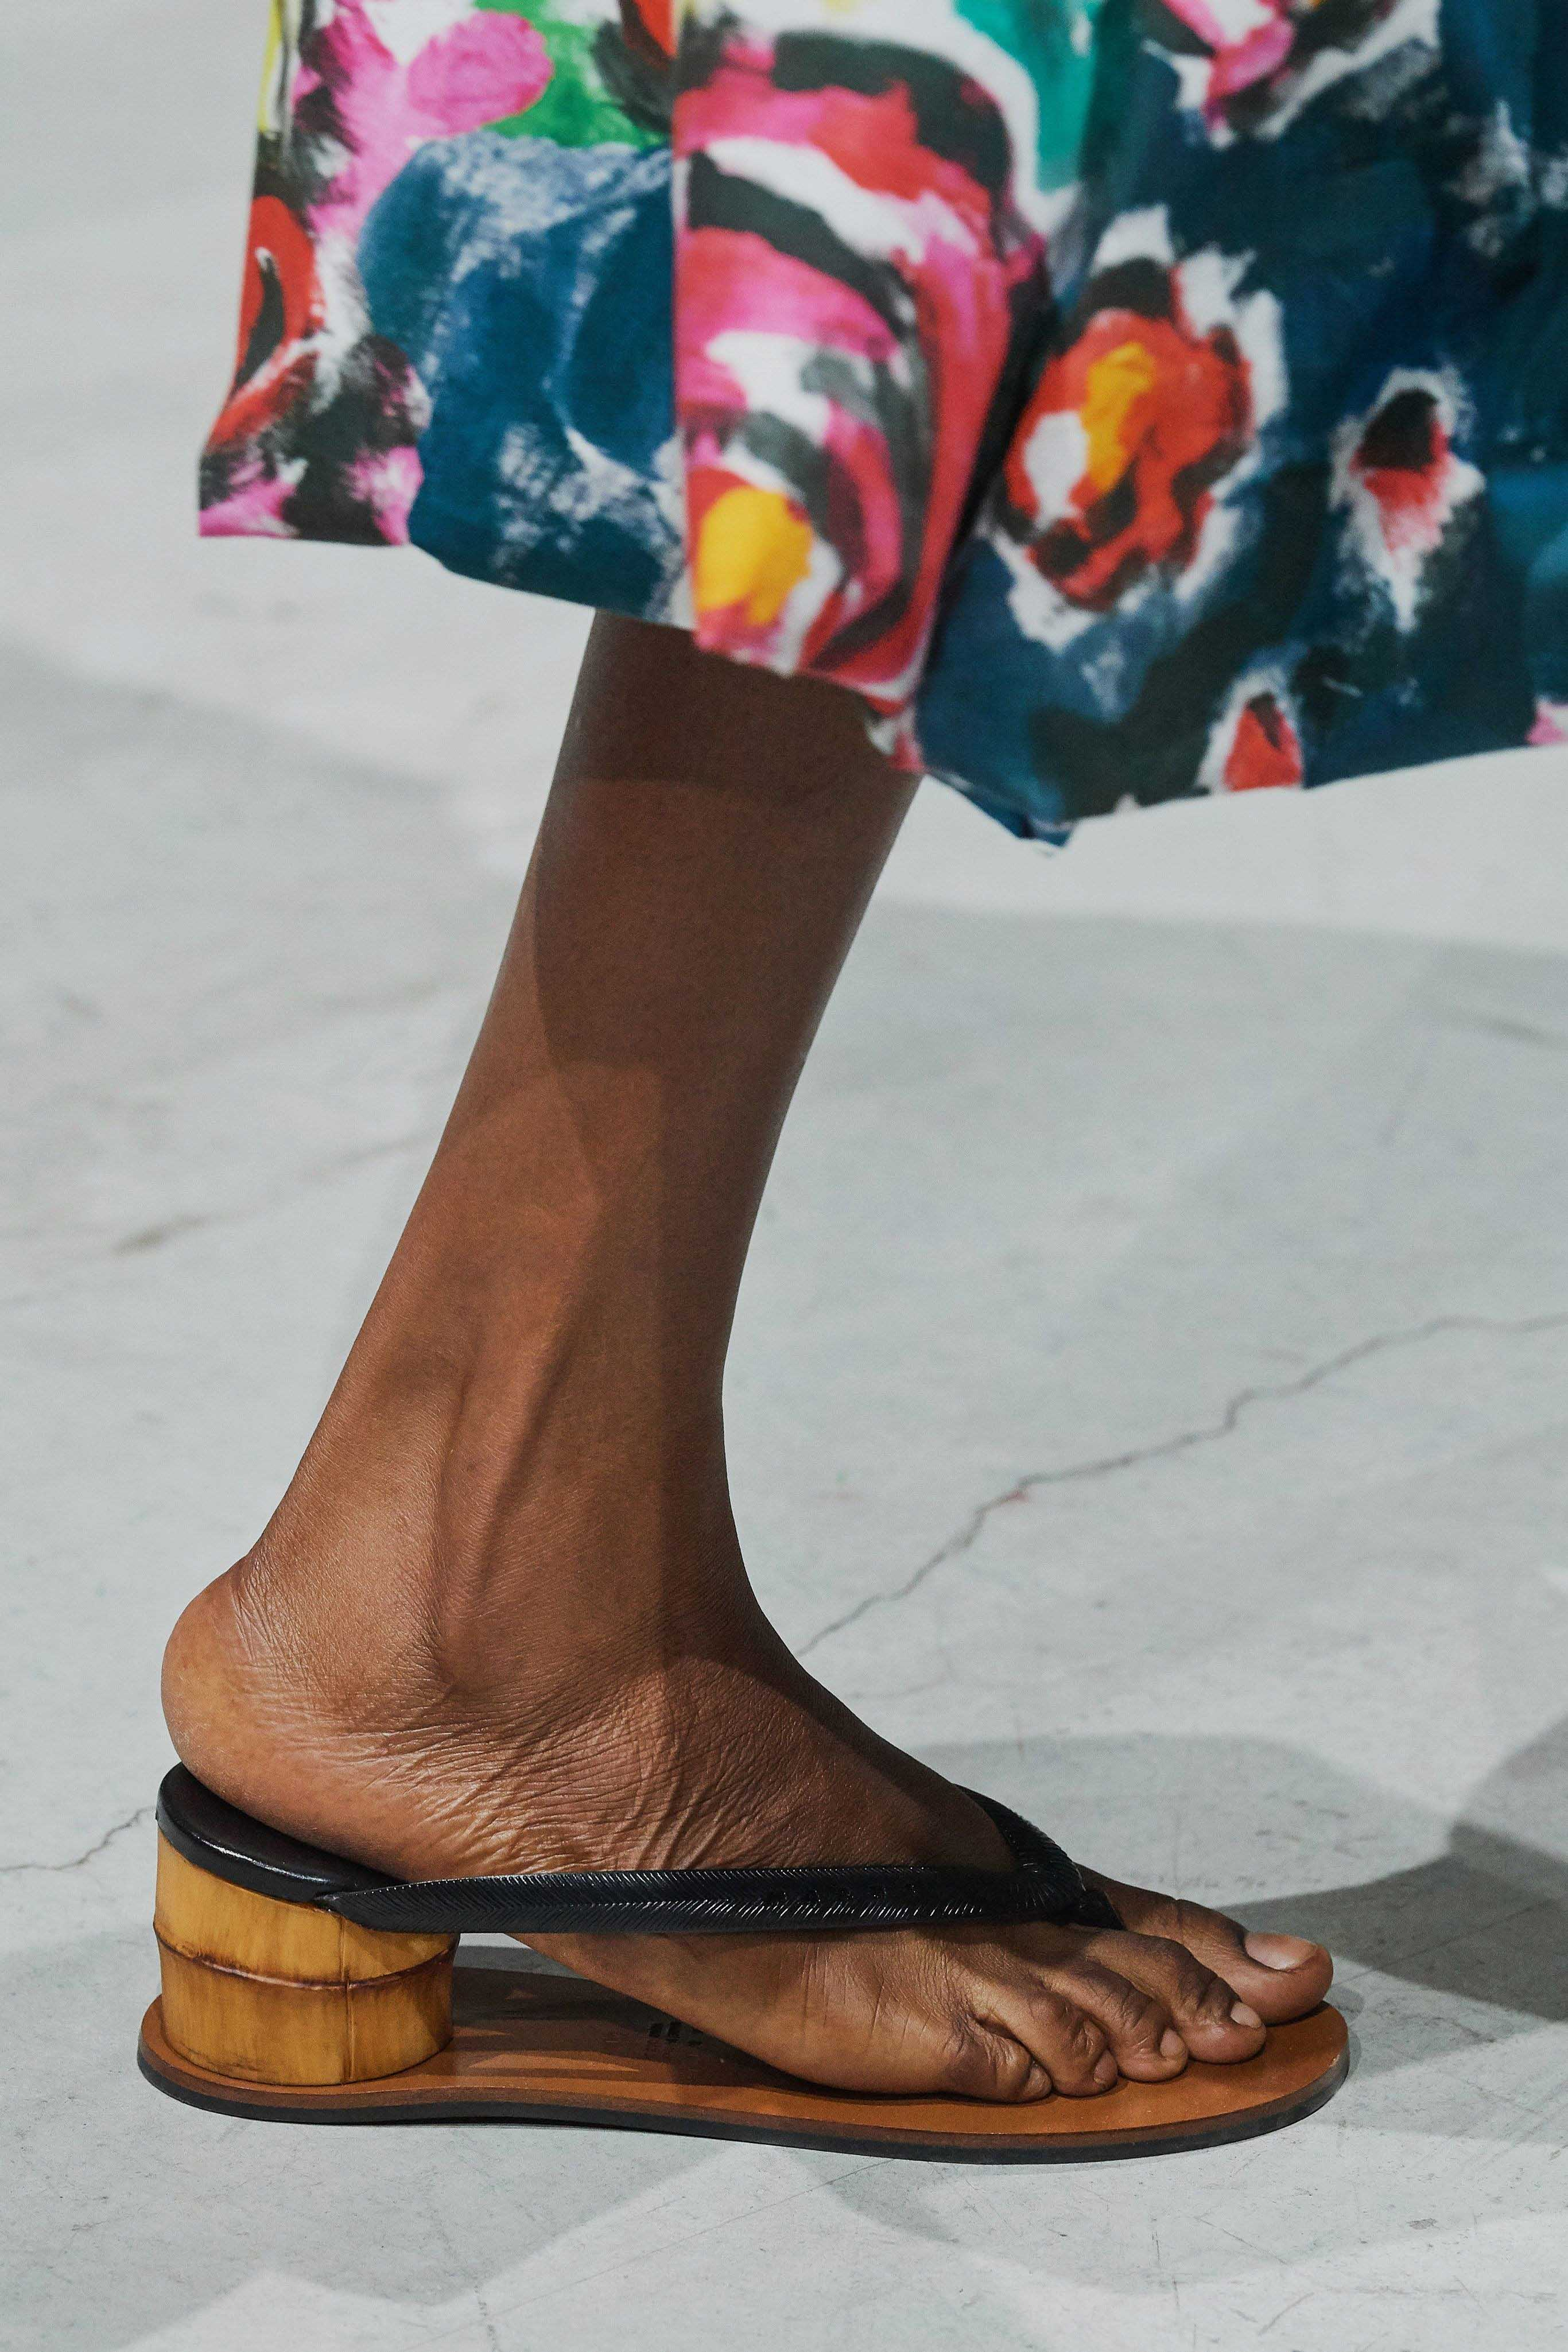 Marni Spring Summer 2020 SS2020 trends runway coverage Ready To Wear Vogue sandals